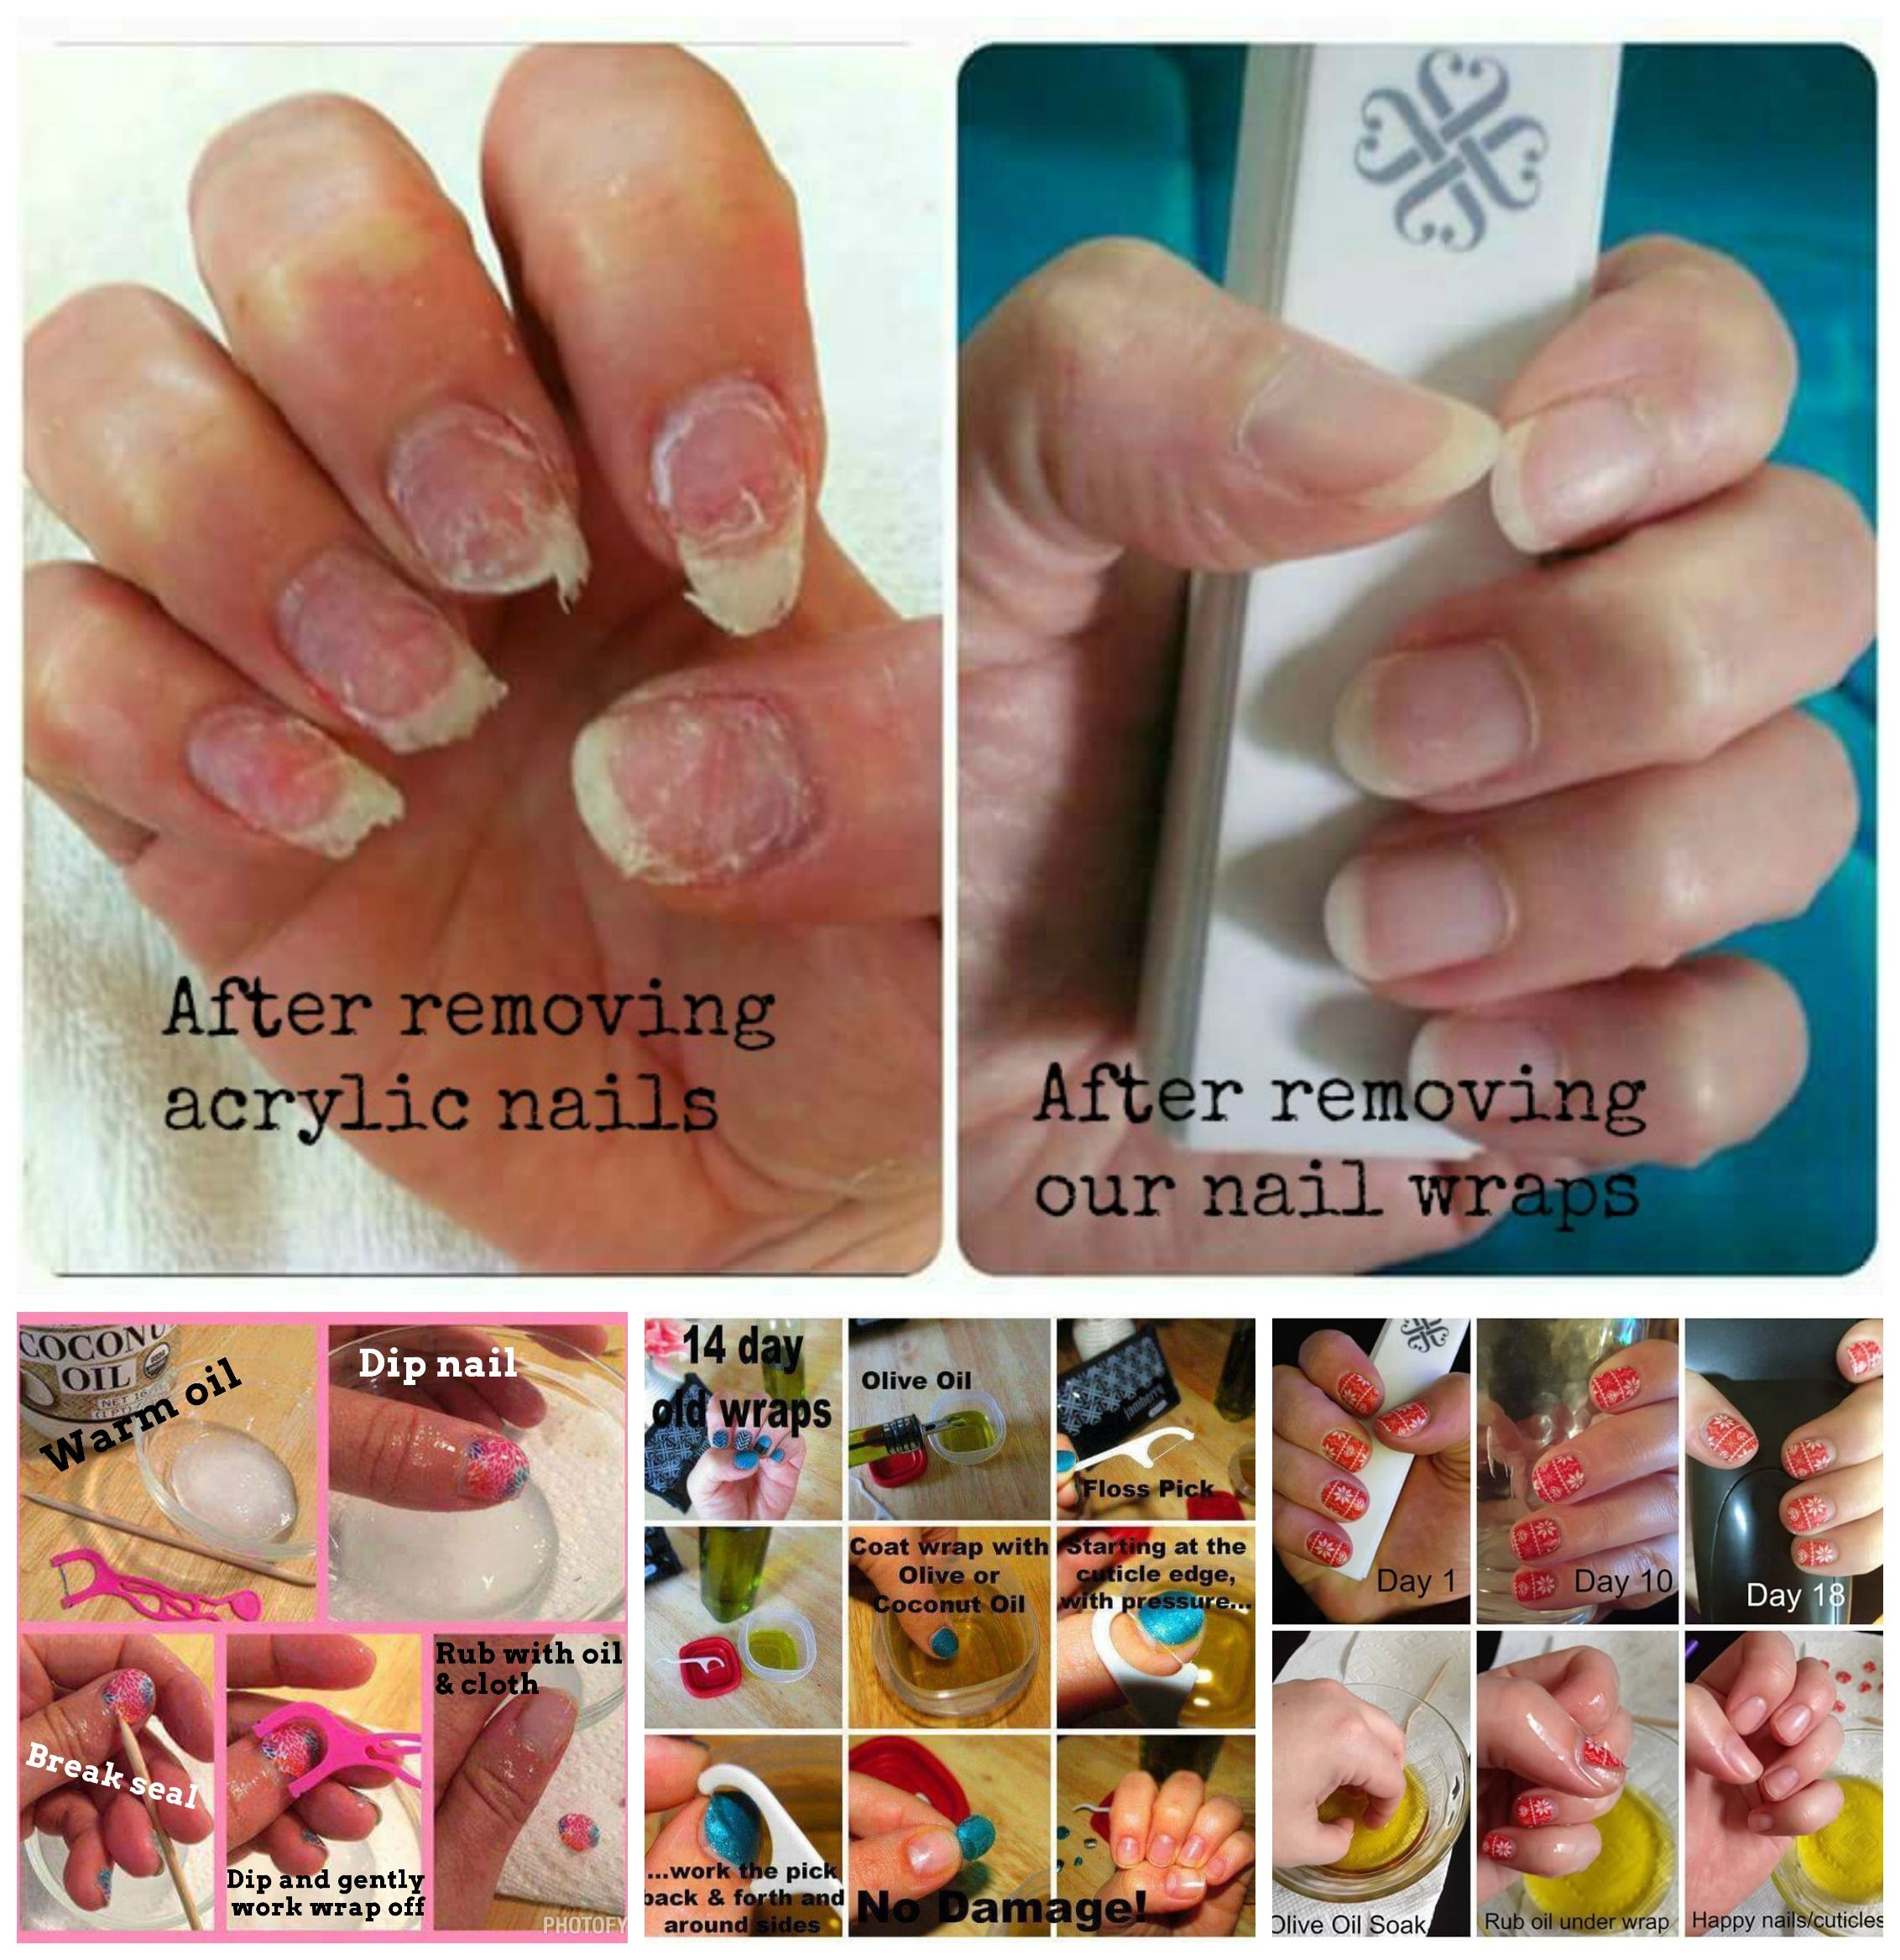 How Many Of You Ladies Have Had To Wait Months For Your Damaged Nails To Grow Out From Having Acrylic Nails F Remove Acrylic Nails Dipped Nails Jamberry Nails